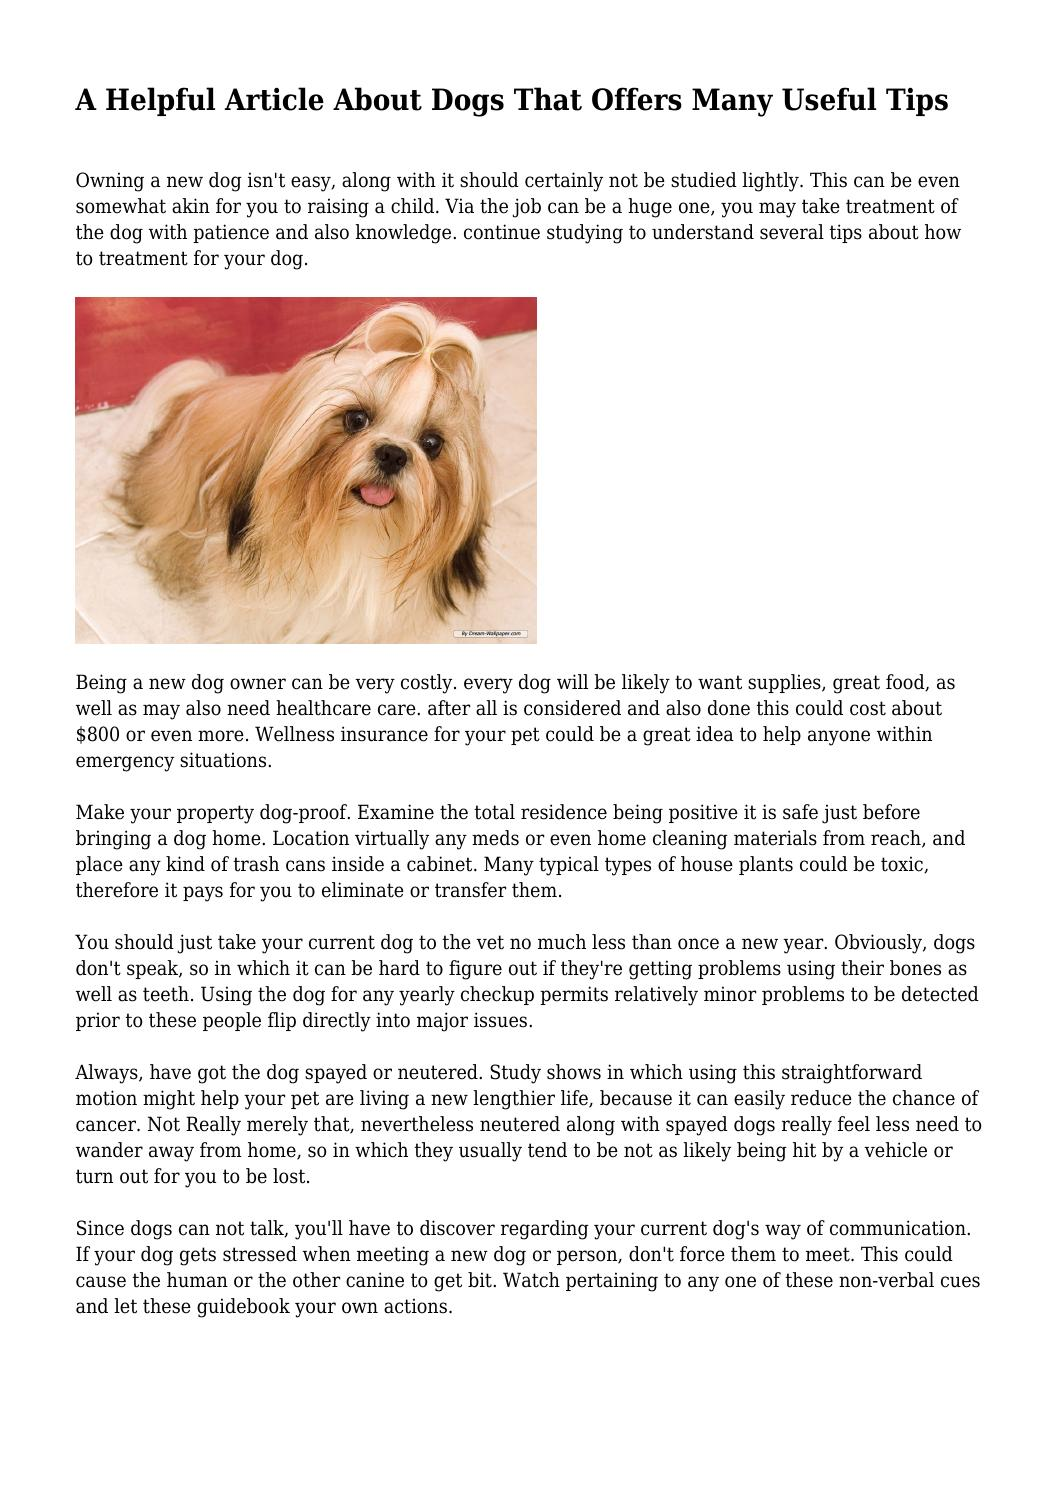 Smart A Helpful Article About Dogs That Offers Many Useful Tips Issuu A Helpful Article About Dogs That Offers Many Useful Tips By If Dogs Could Talk Quotes If Dogs Could Talk Youtube bark post If Dogs Could Talk